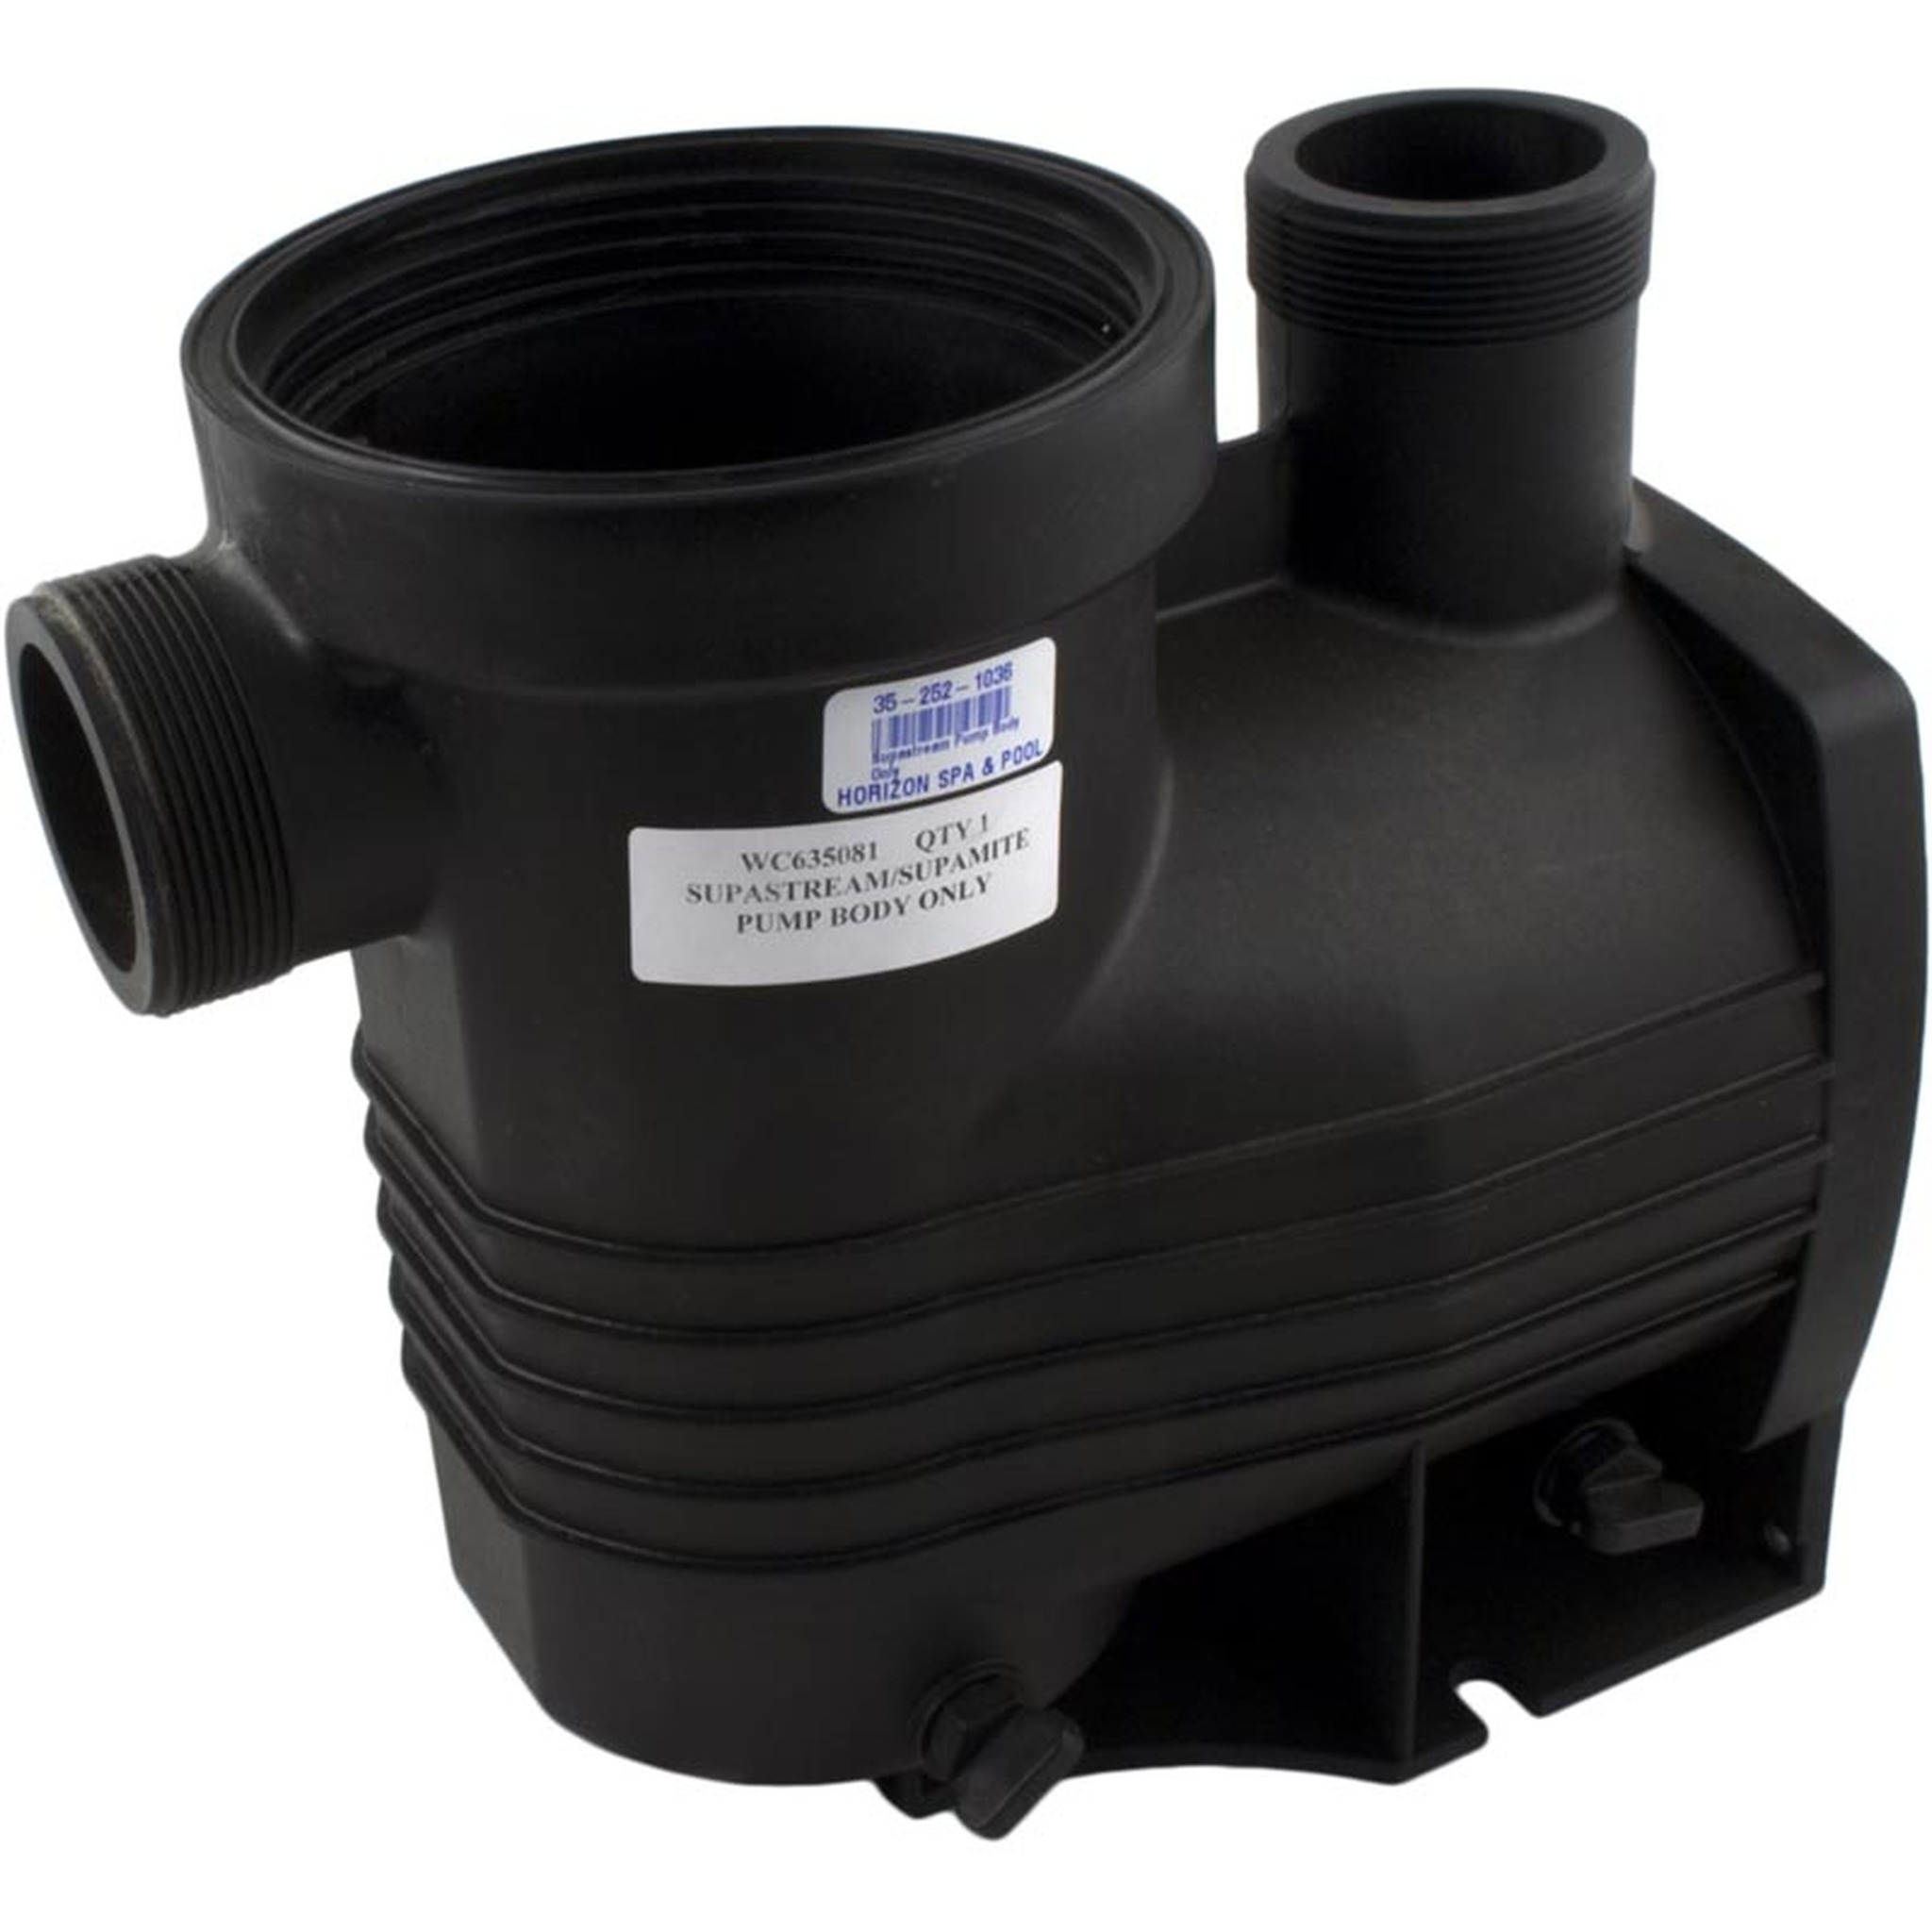 WATERCO SUPASTREAM PUMP